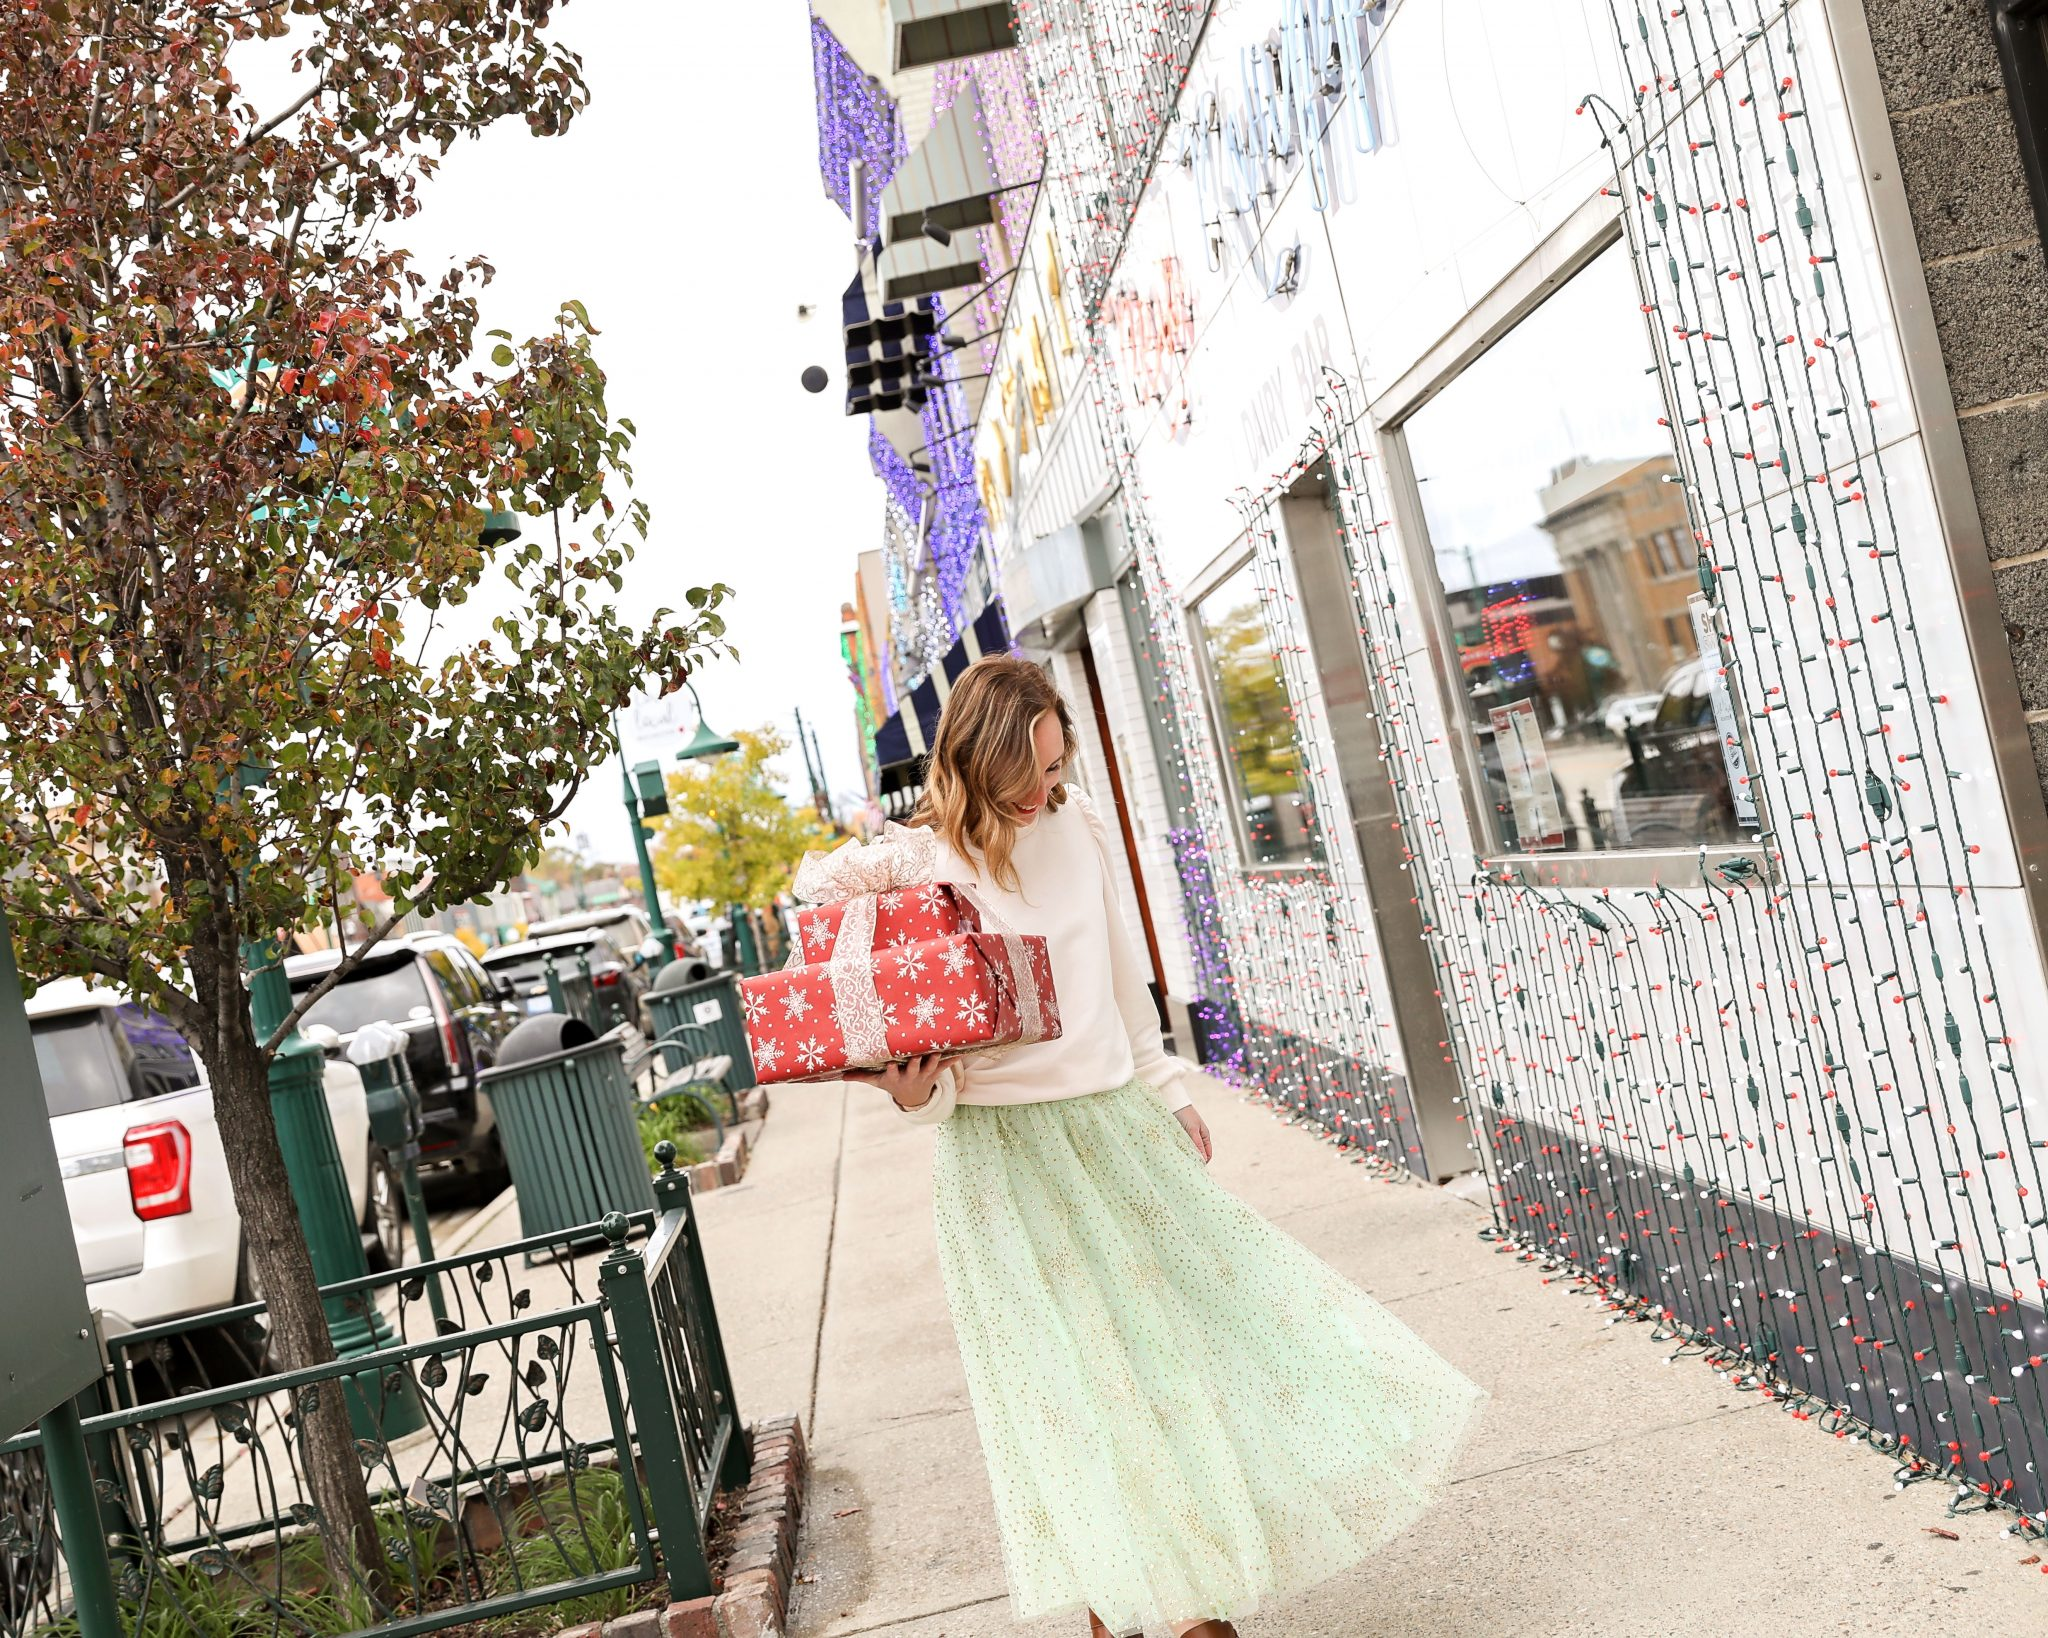 Holiday Gift Guides | Daily Splendor Life and Style Blog #giftgiving #christmaspresents #christmas2020 #giftguide #tulleskirt #michigan